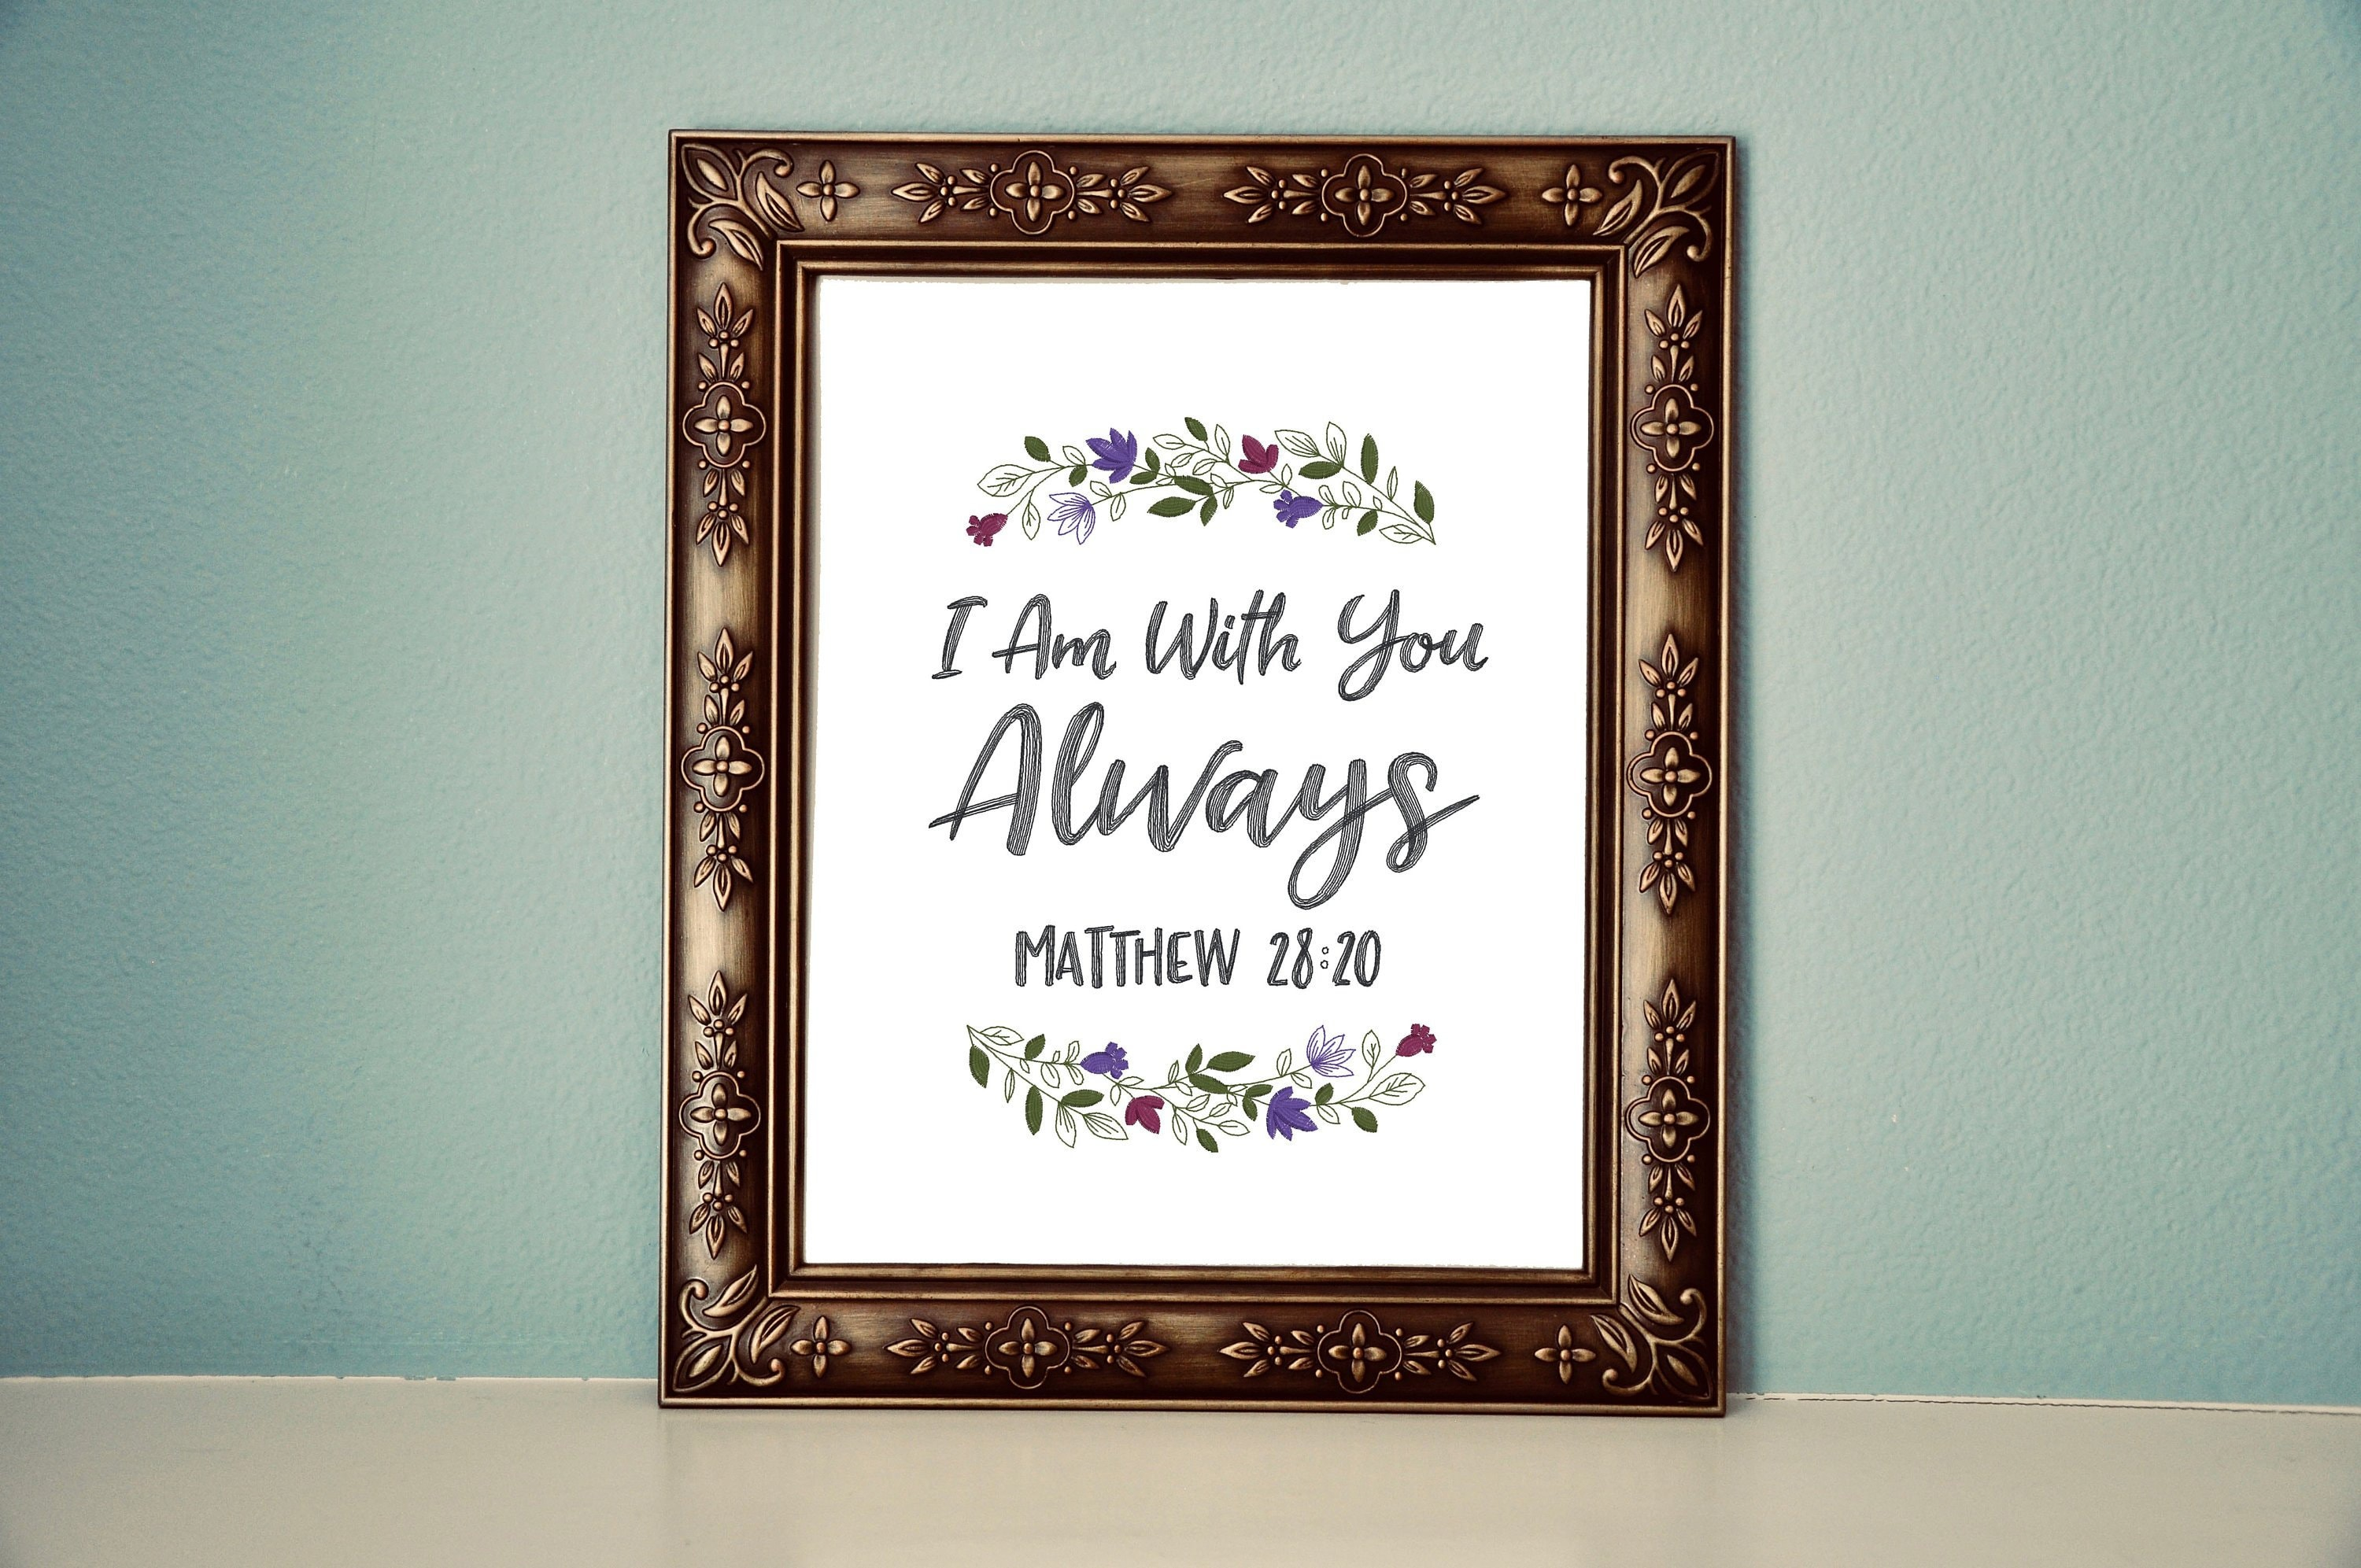 Scripture Embroidered Canvas, I Am With You Always, Matthew 28:20